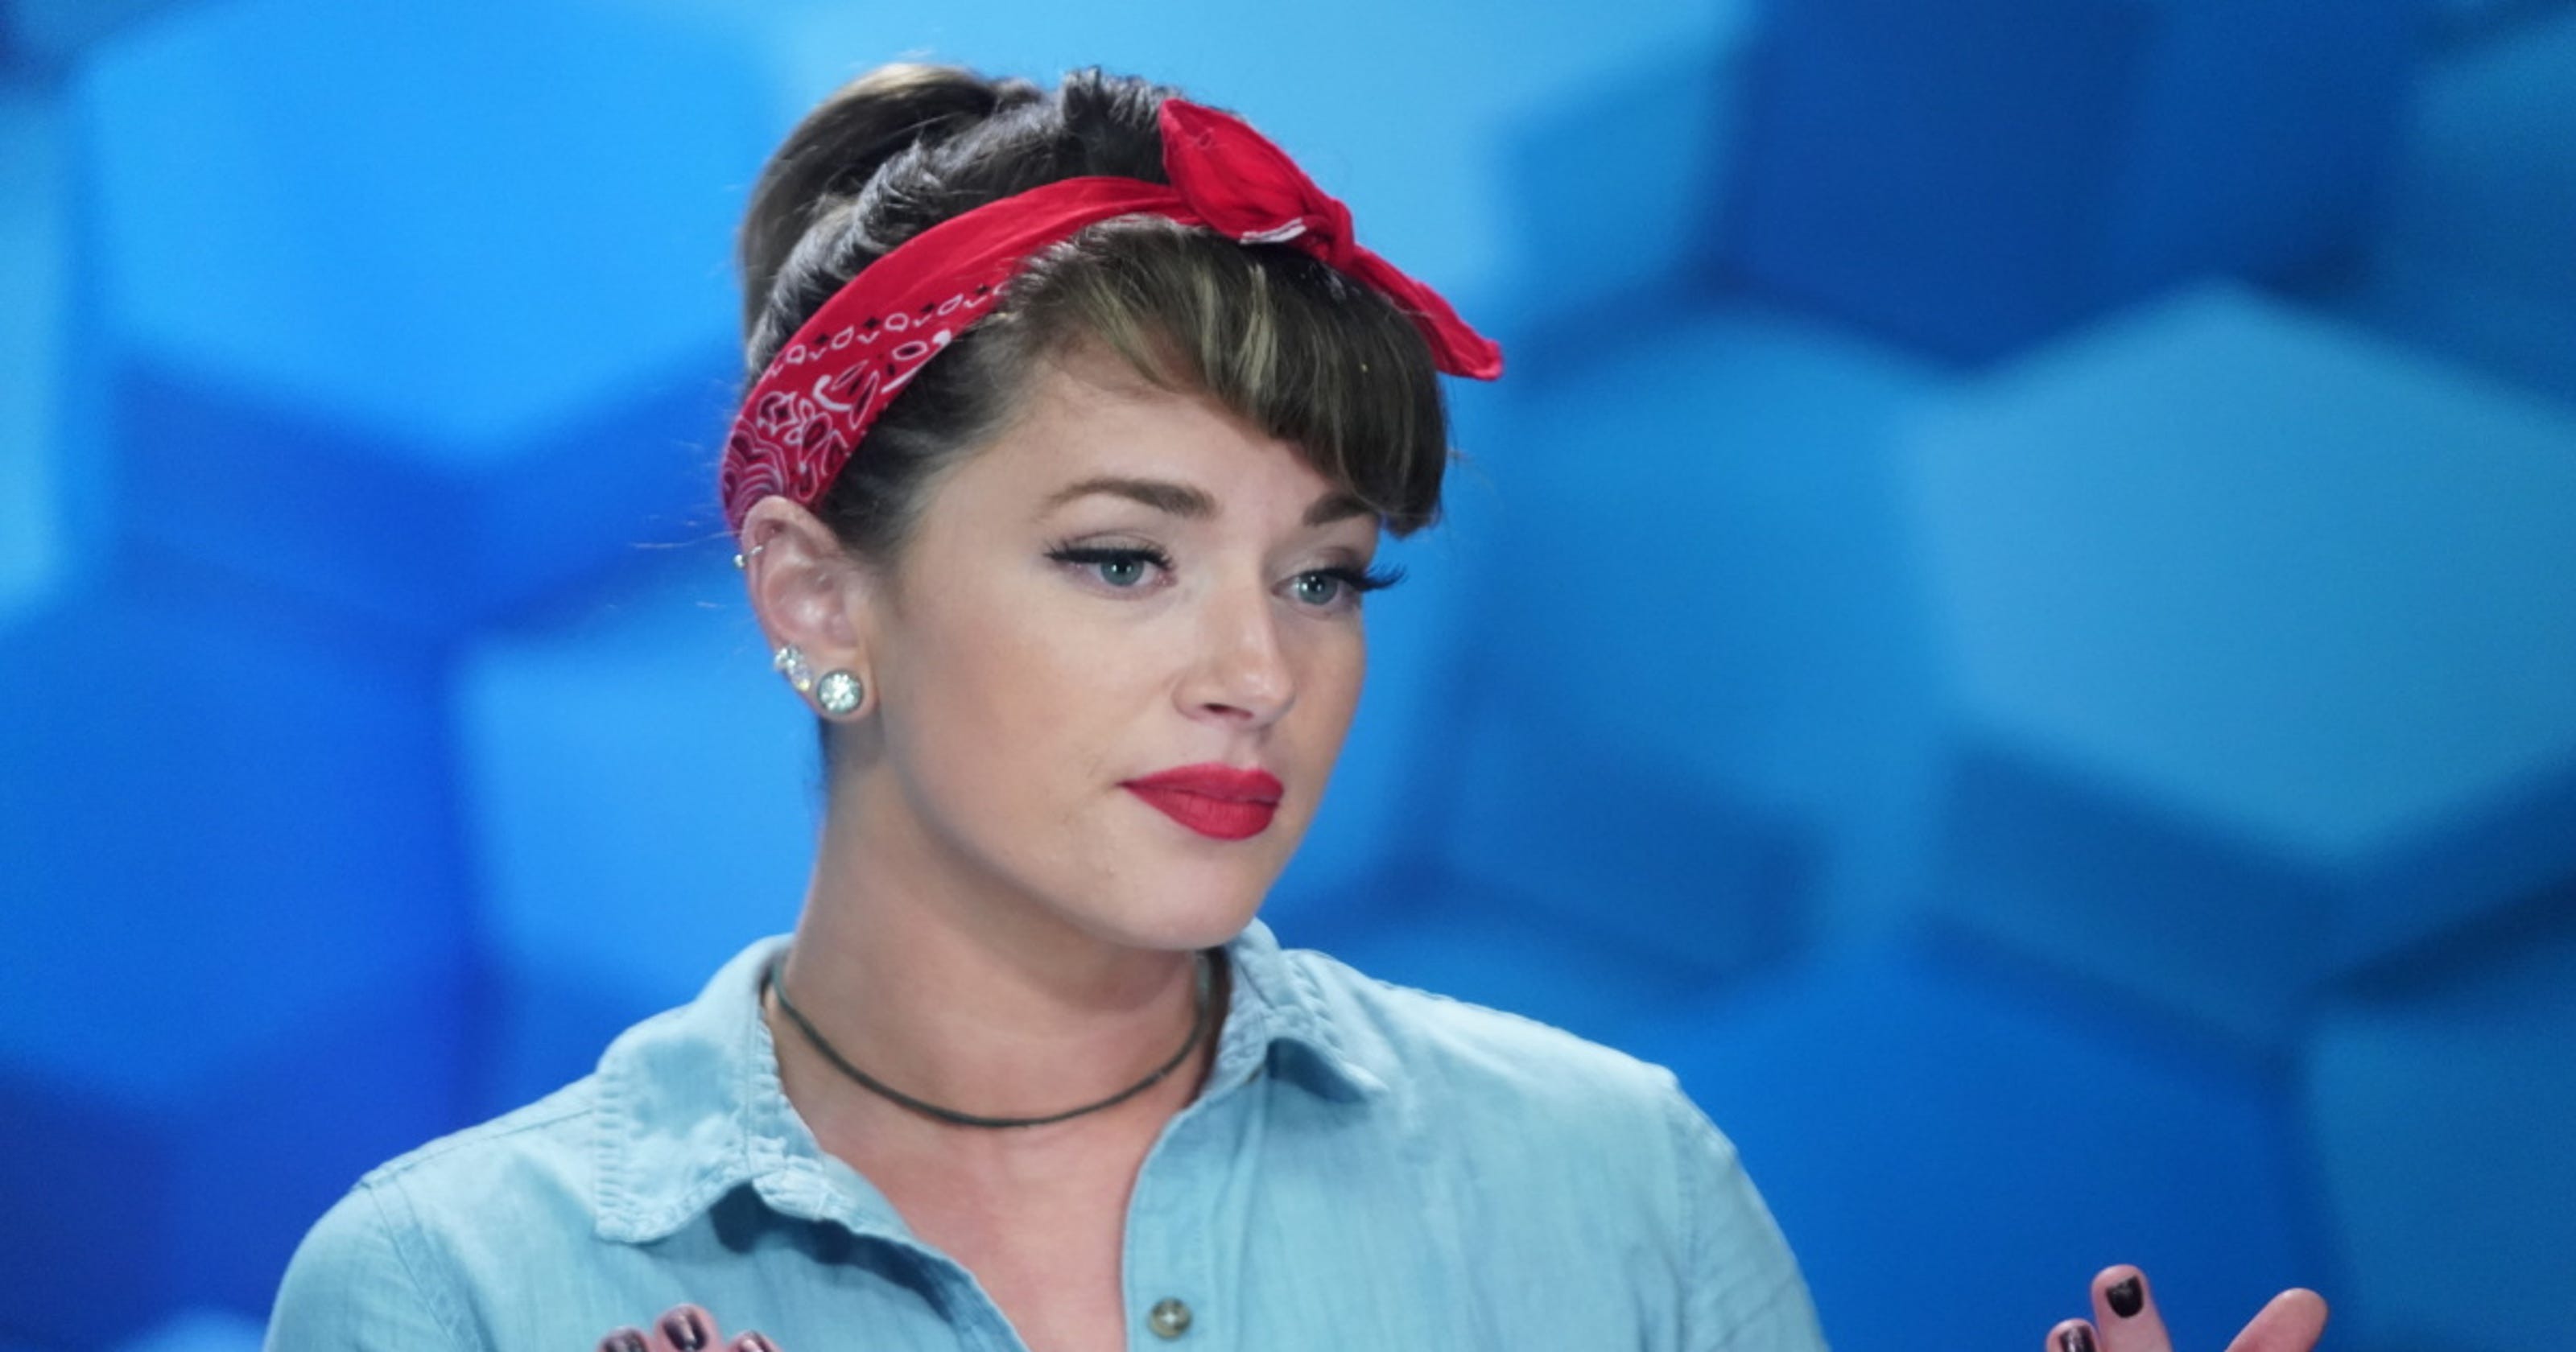 Big Brother UPDATE: Sam's reign ends, Bayleigh is new HOH